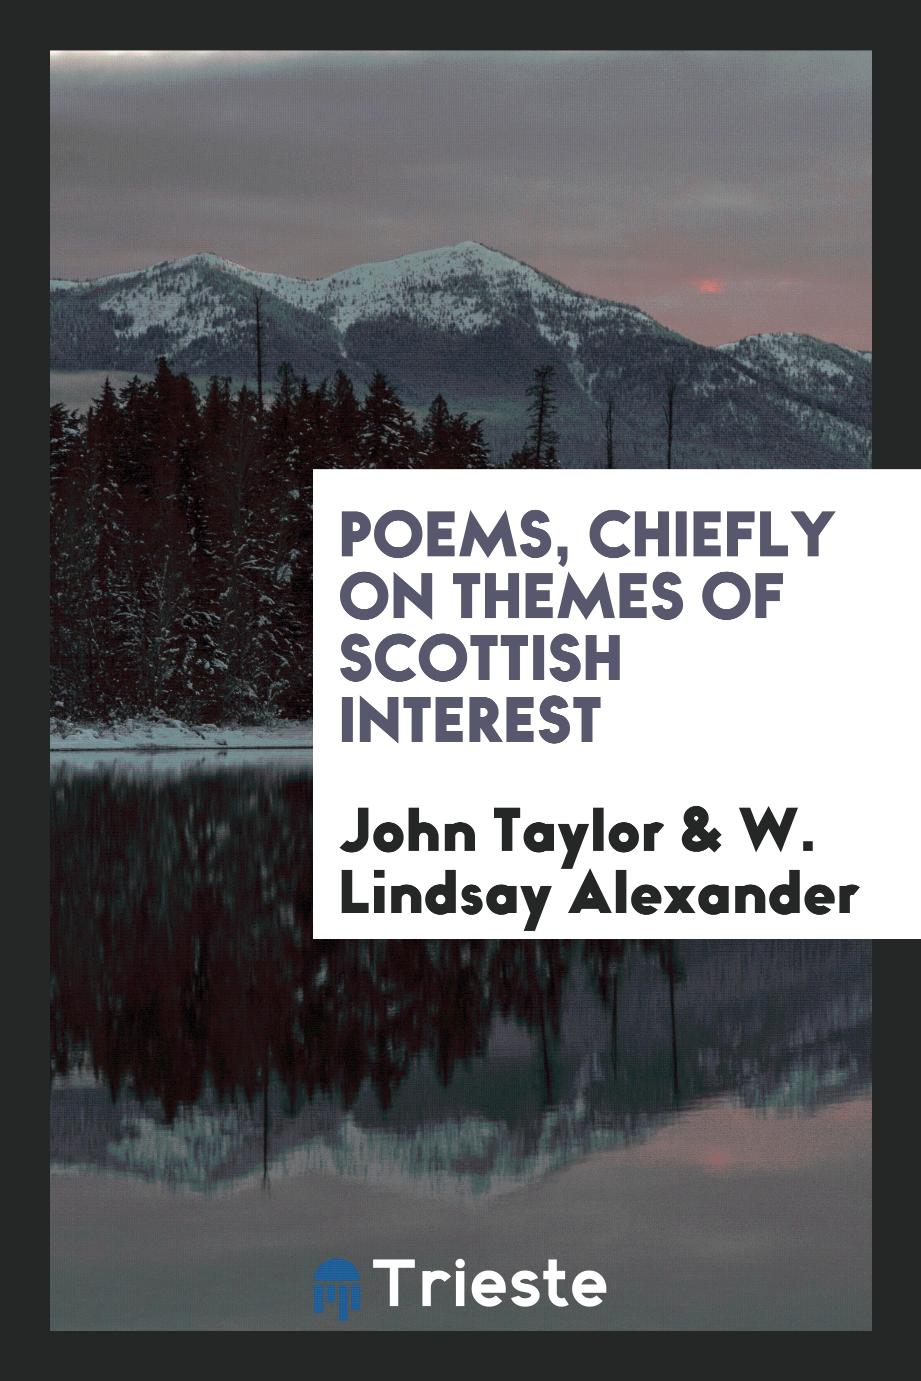 Poems, Chiefly on Themes of Scottish Interest